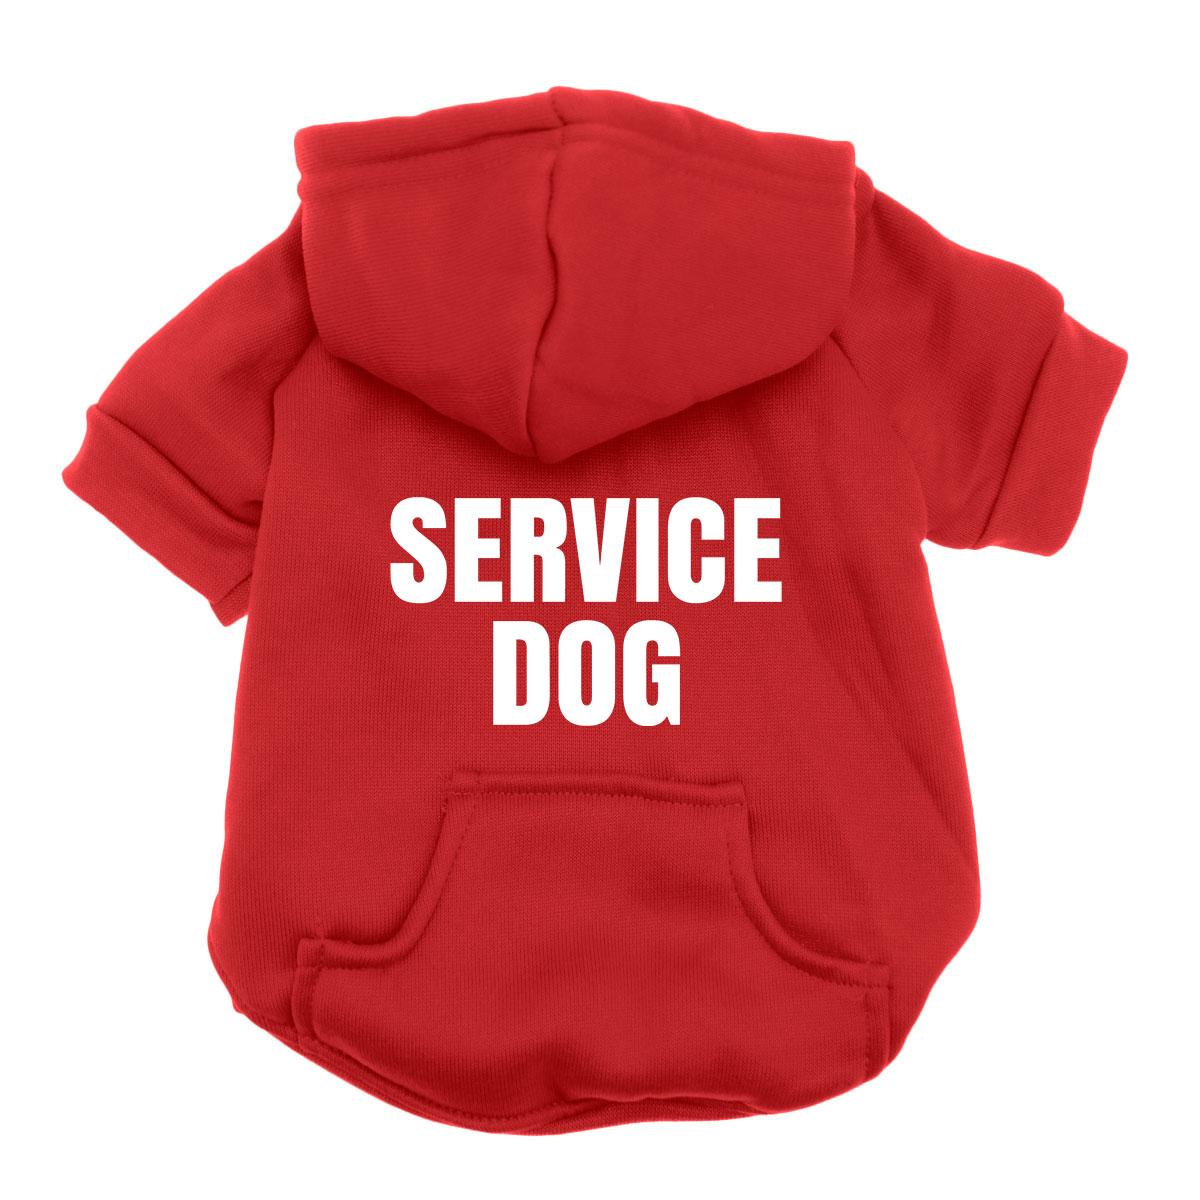 Service Dog Hoodie - Red